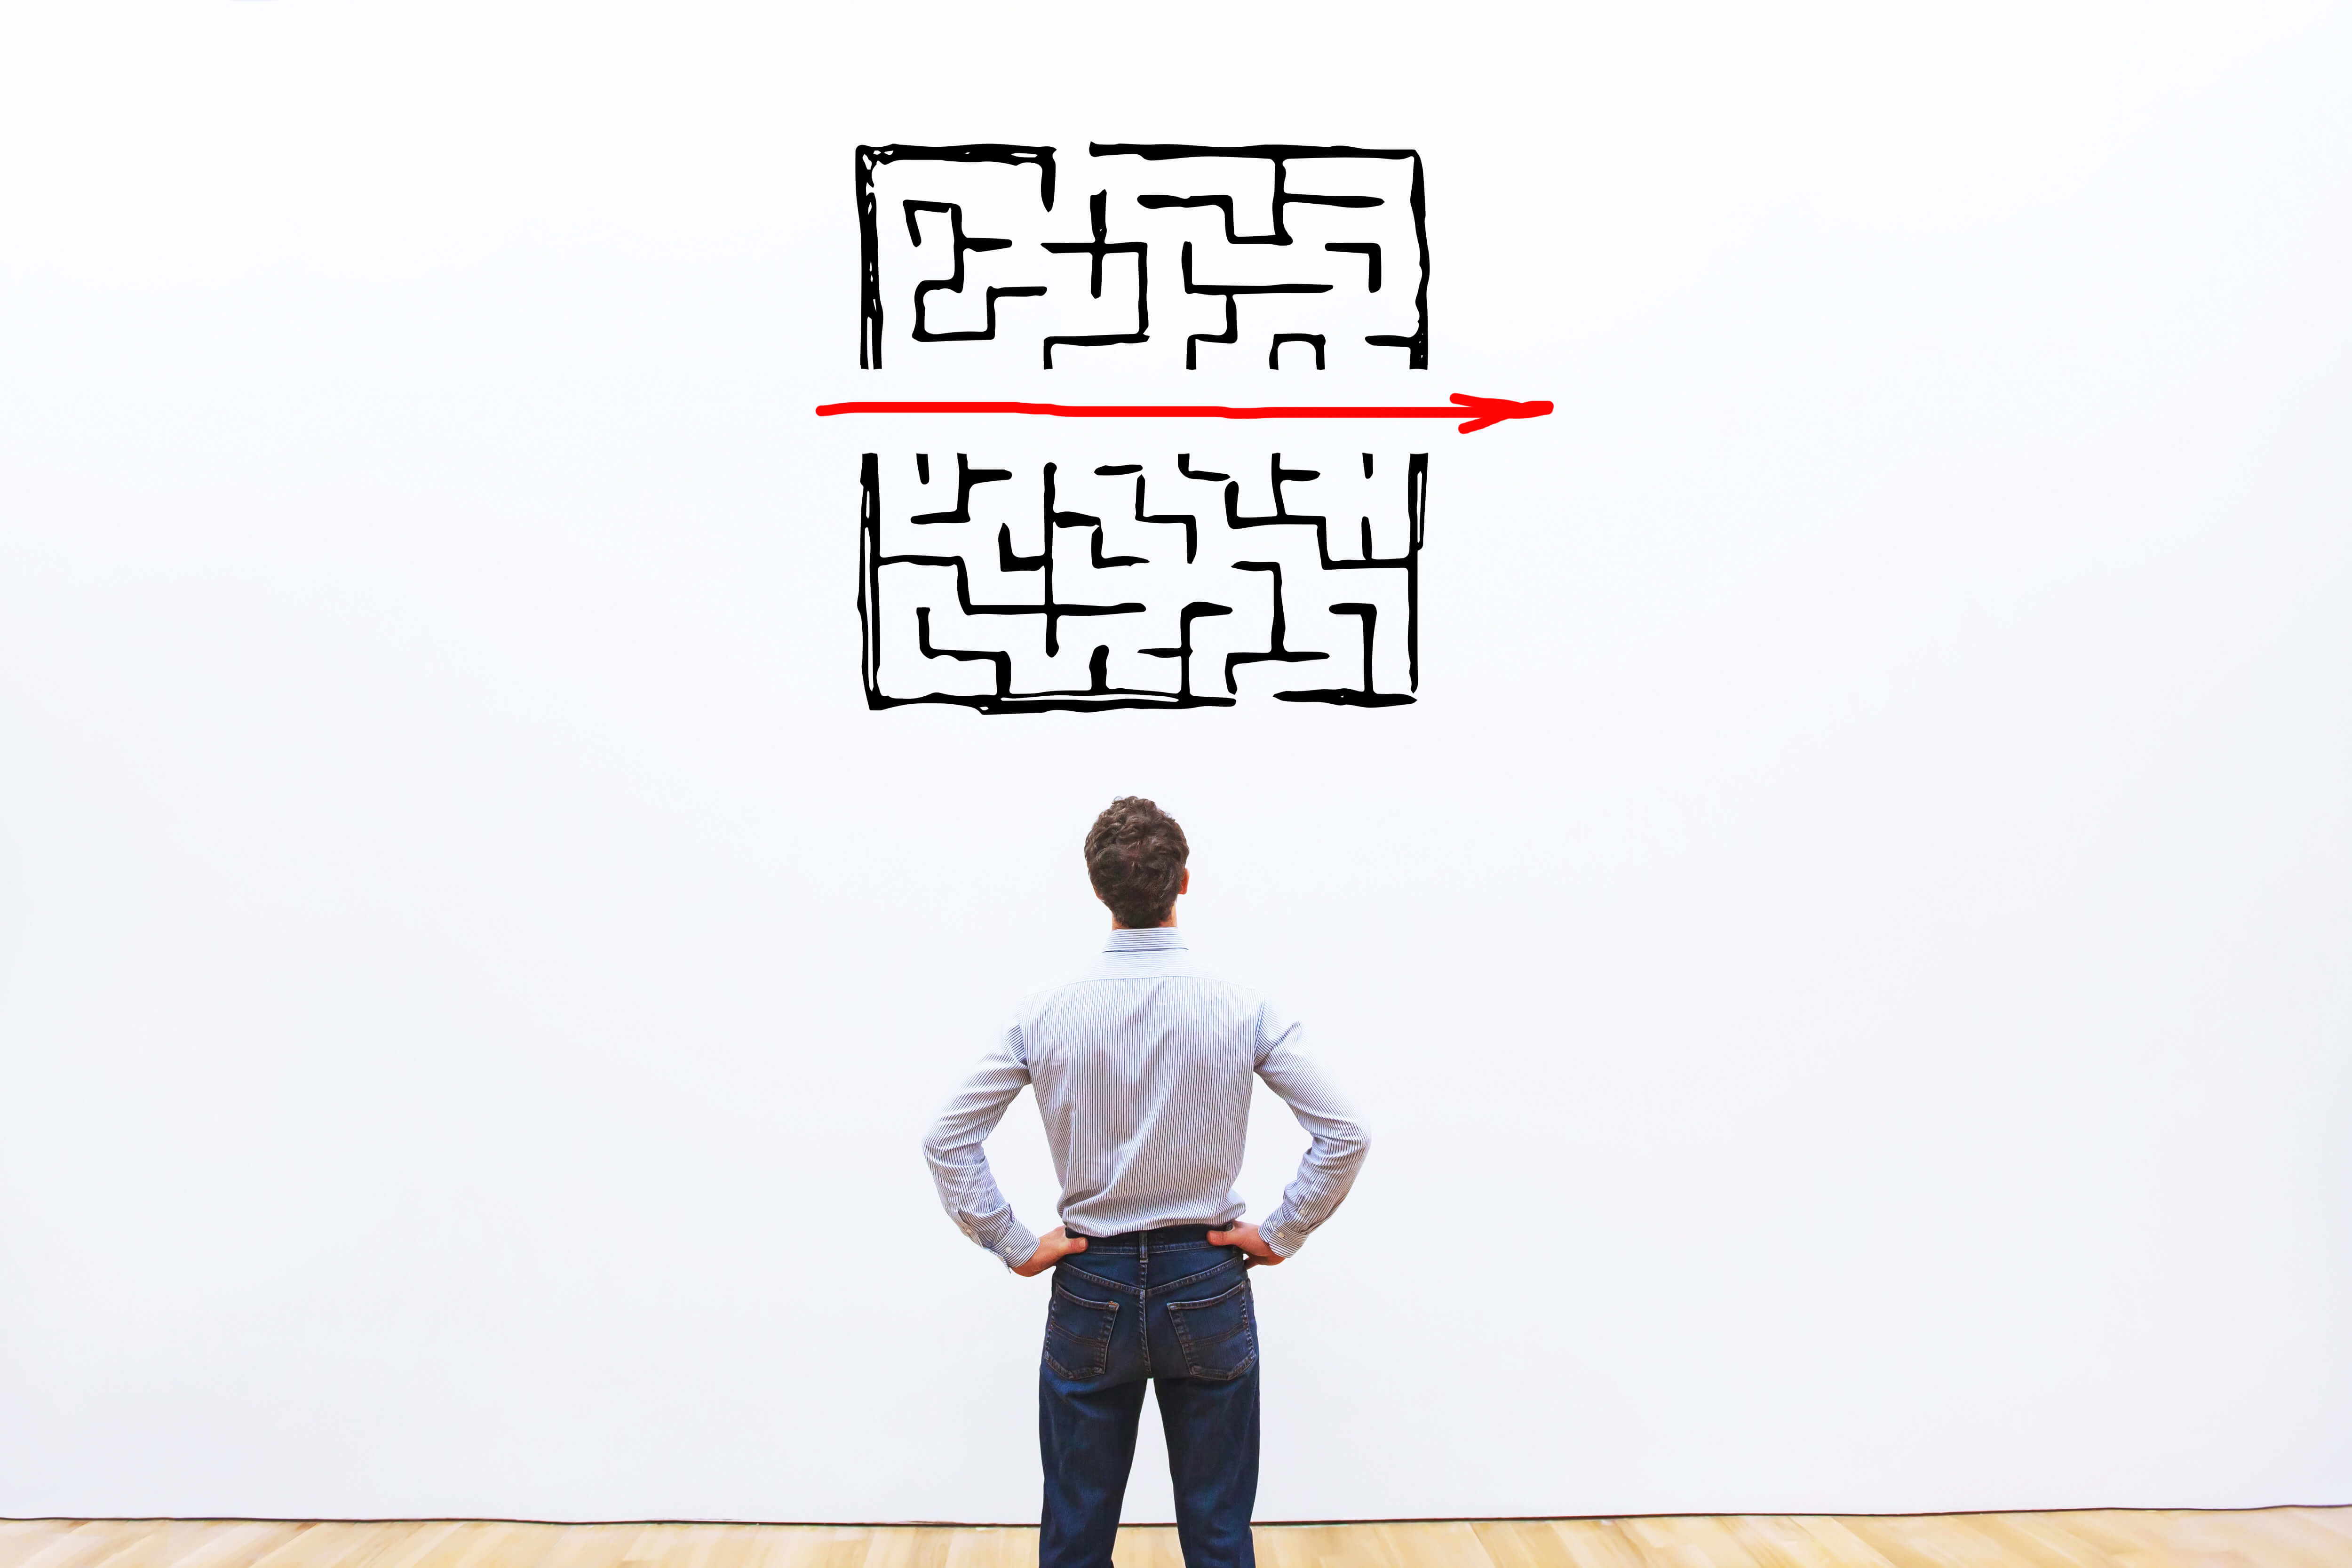 Charting your career path forward